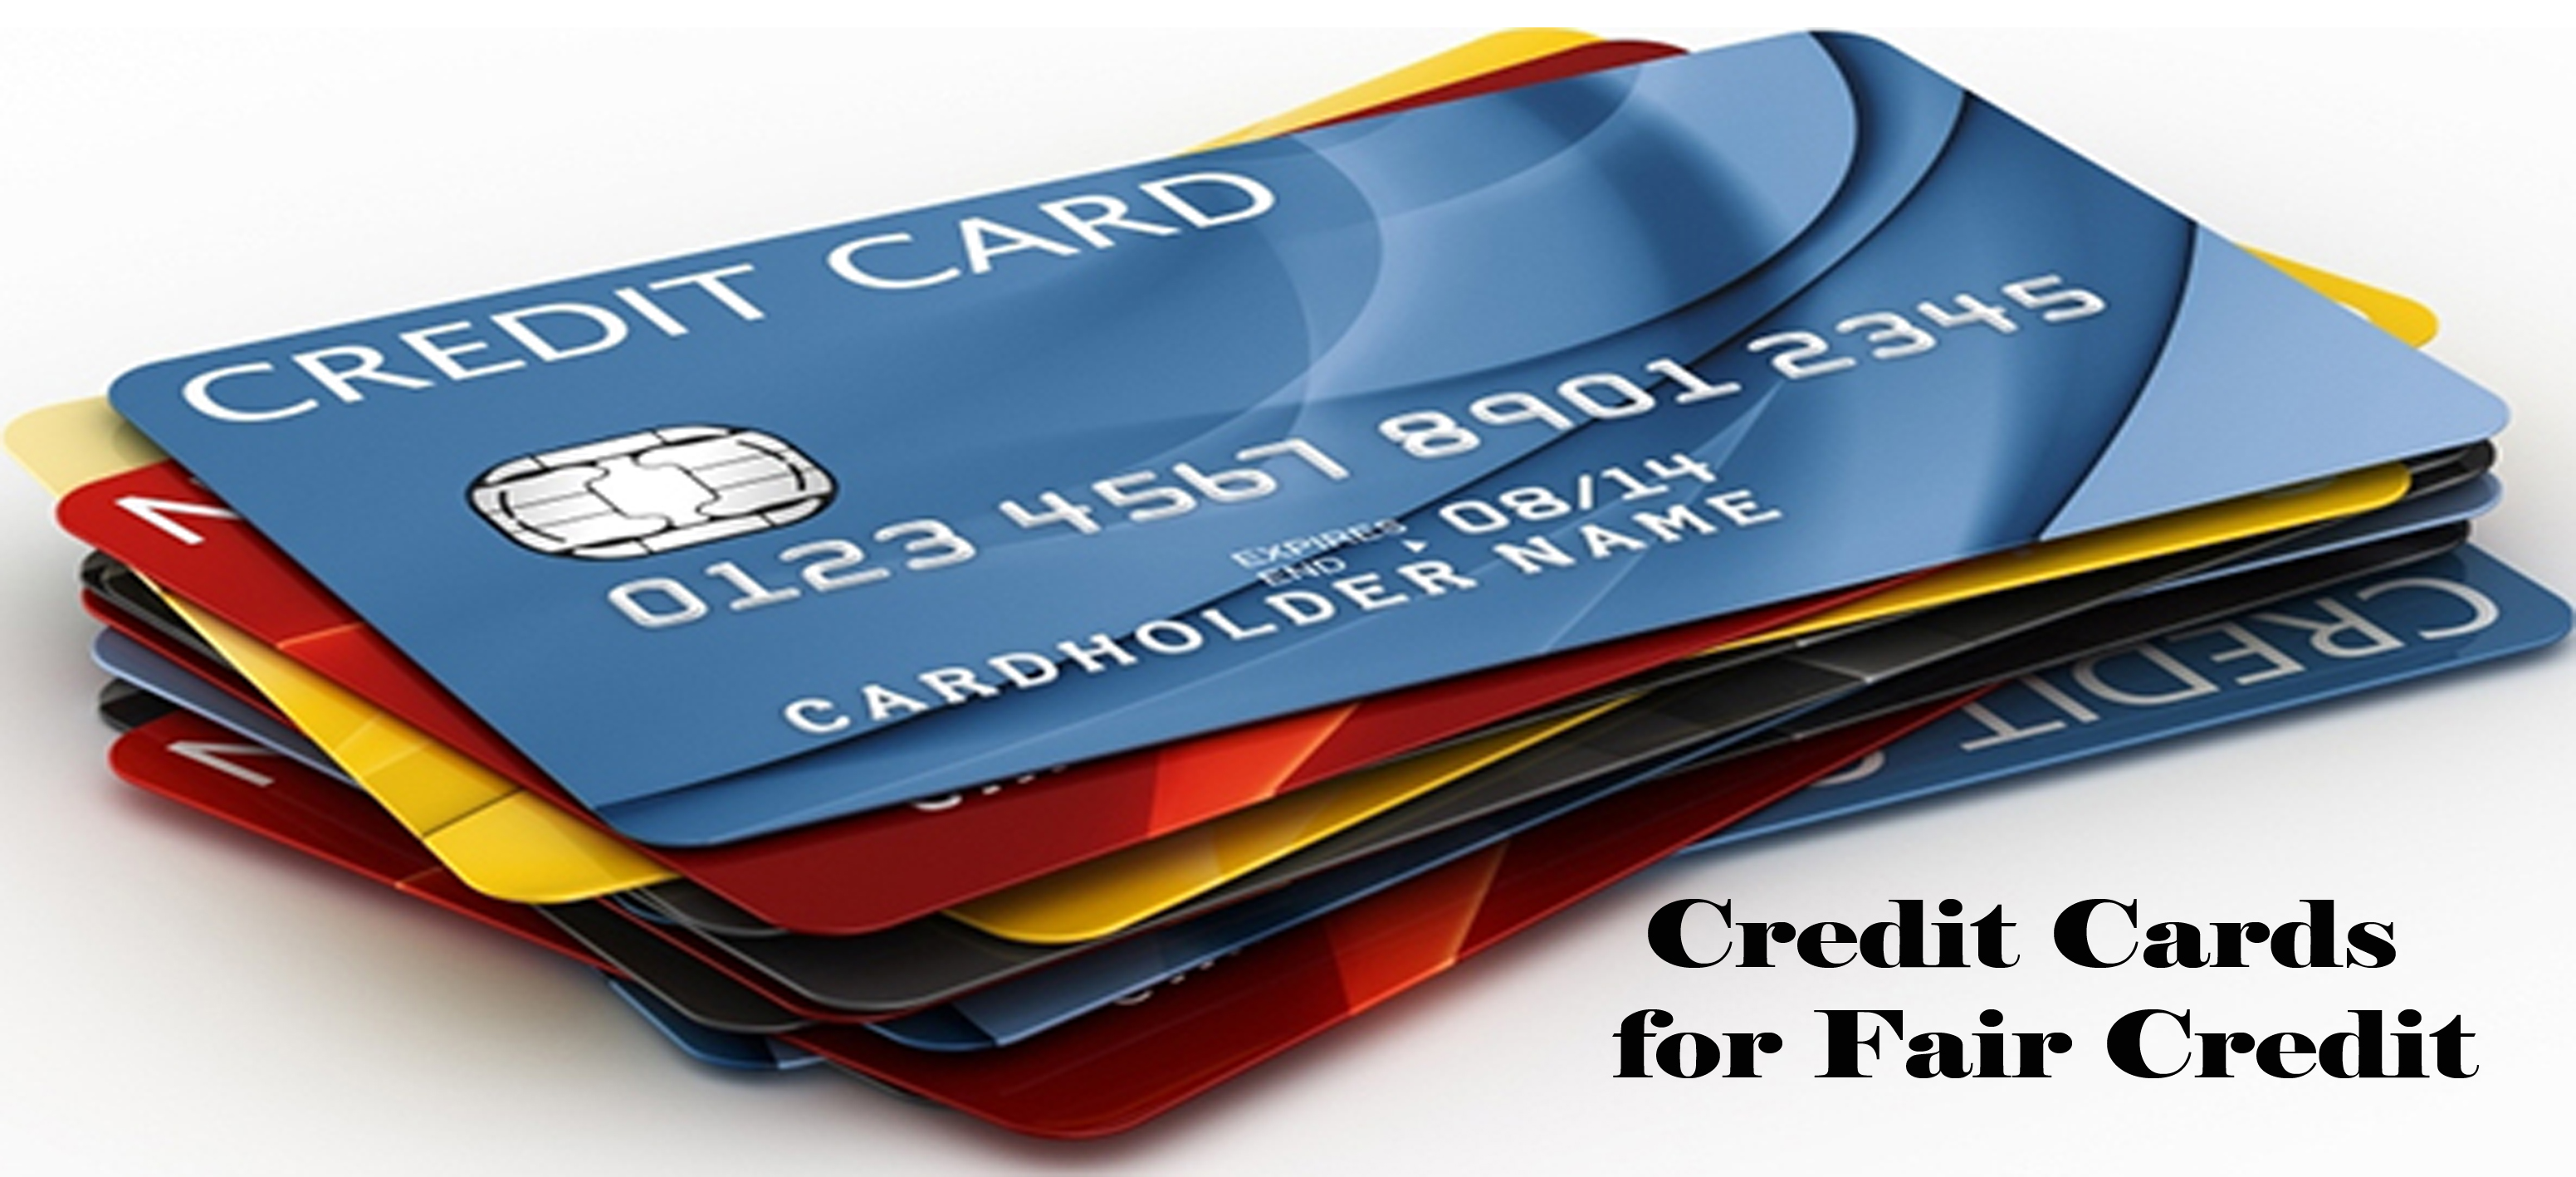 Credit Cards for Fair Credit - Best Fair Credit Cards